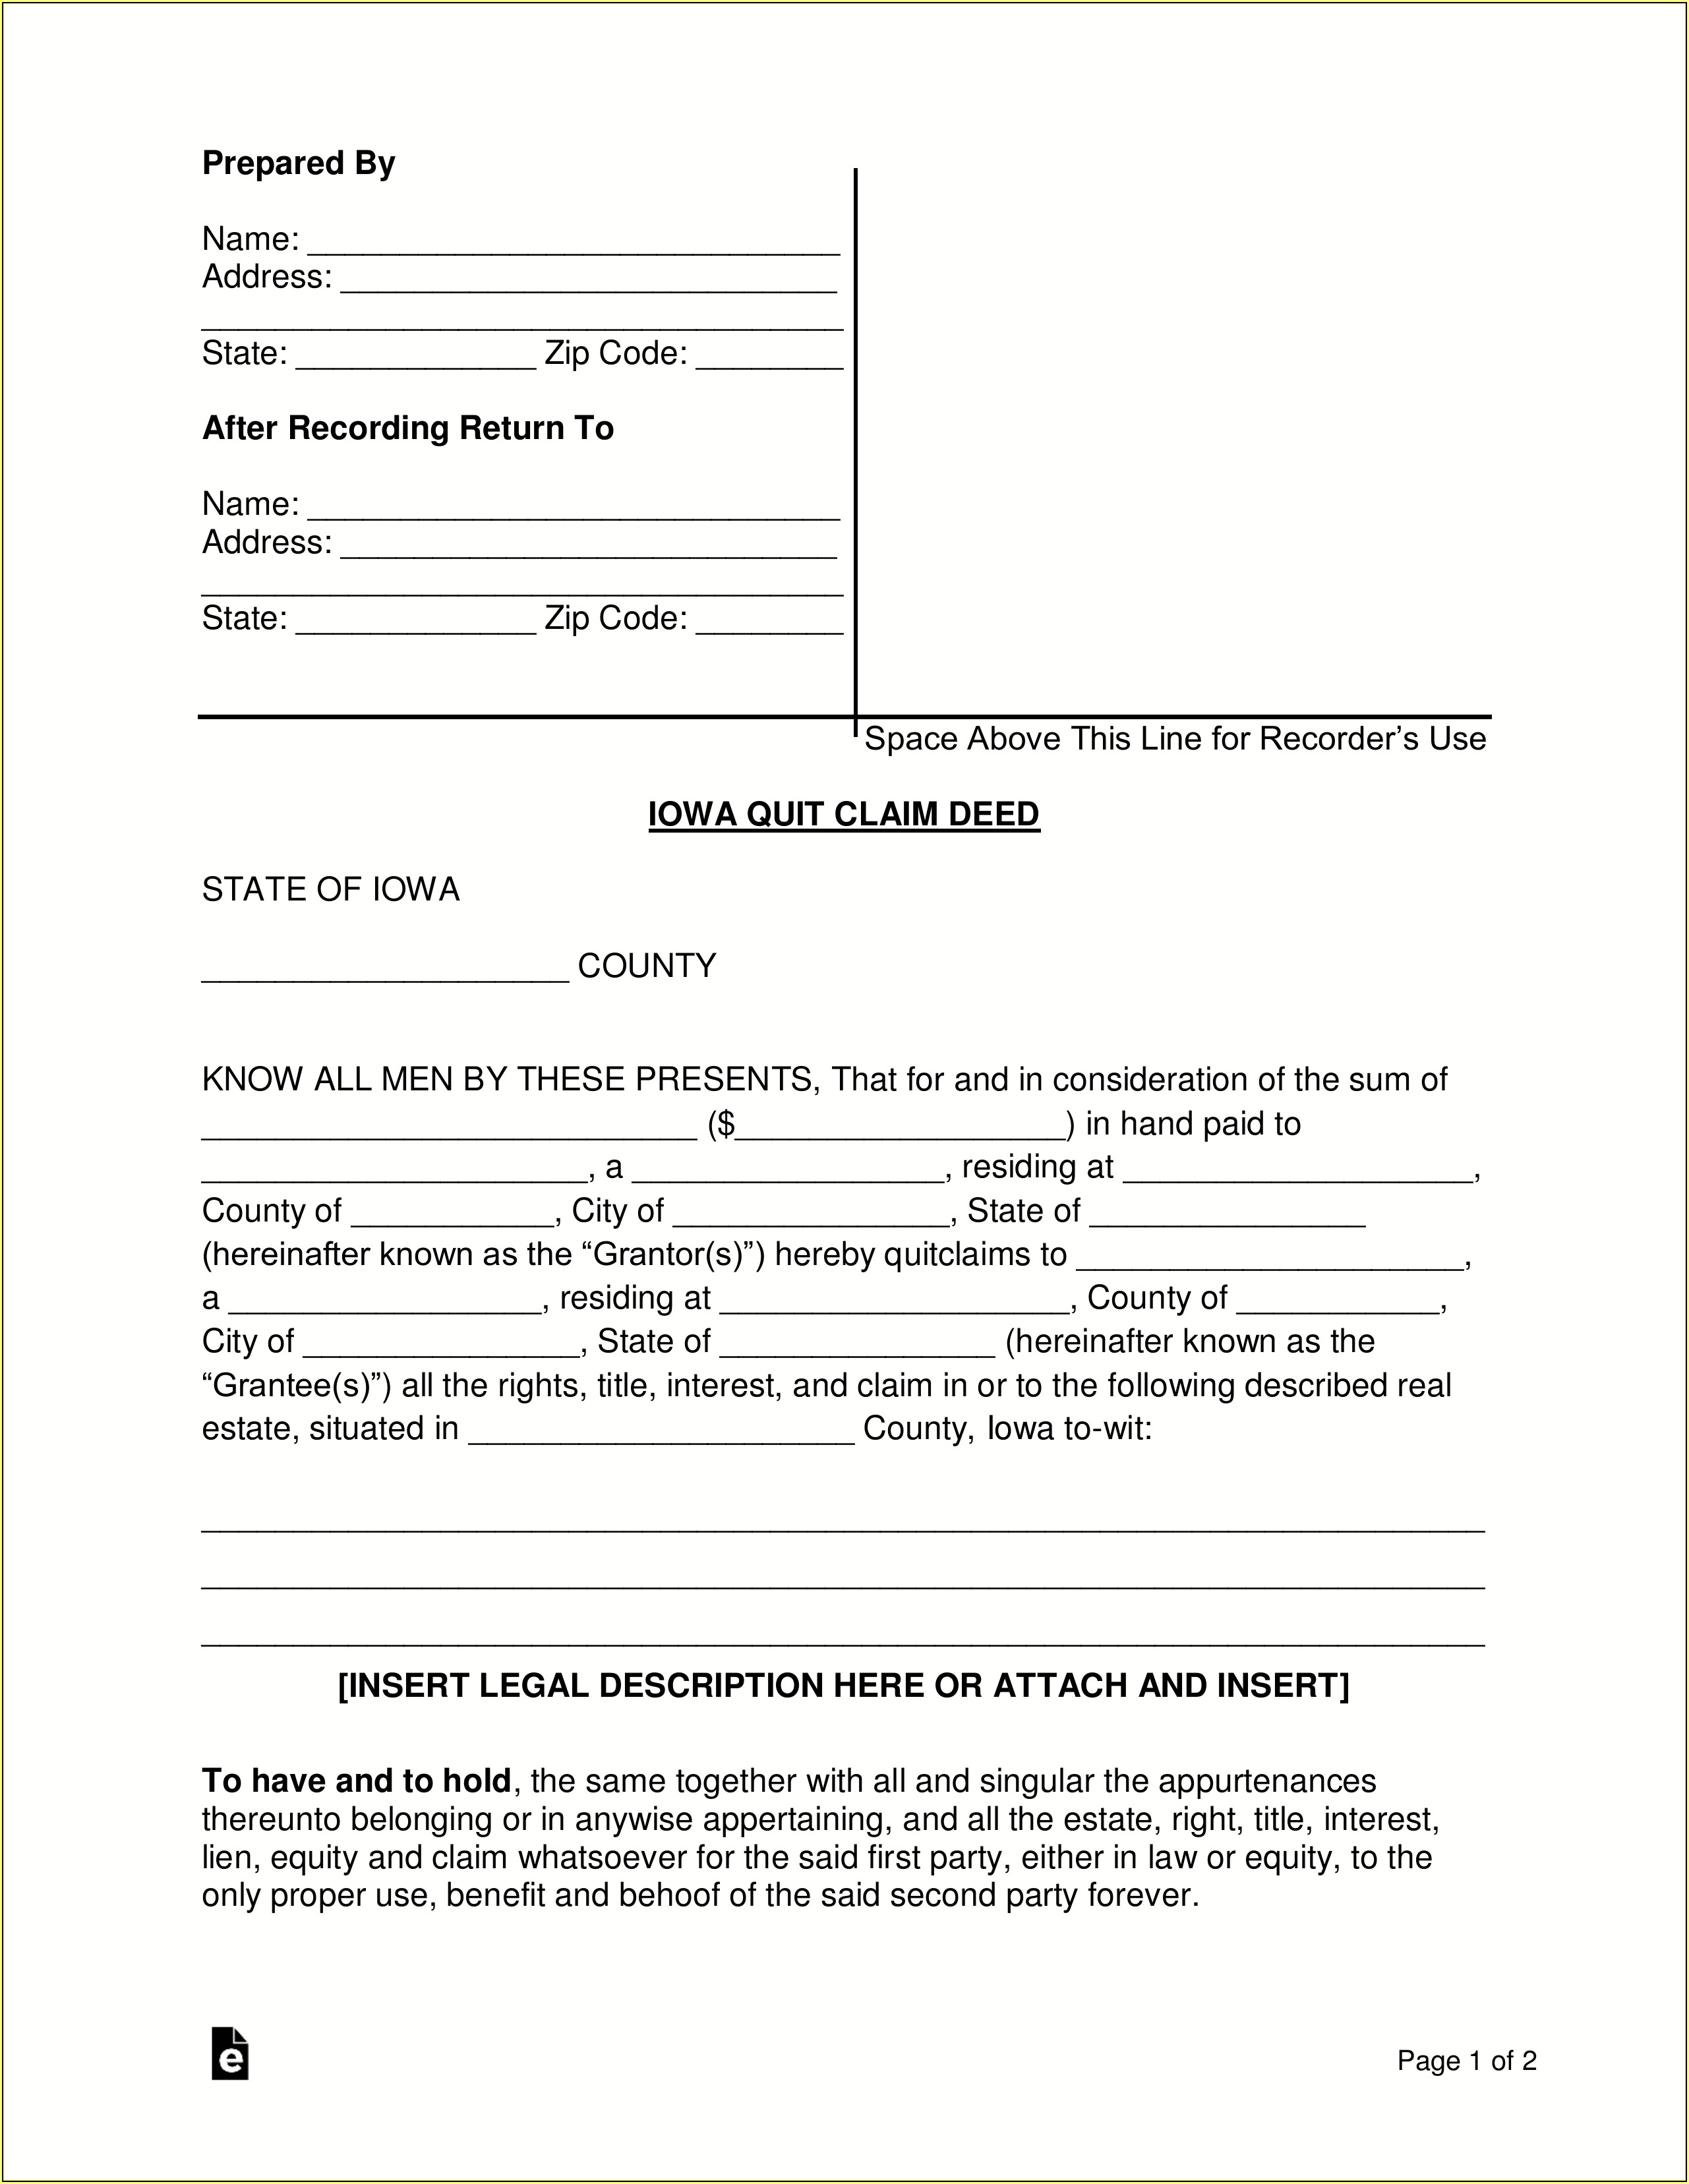 State Of Iowa Quit Claim Deed Form